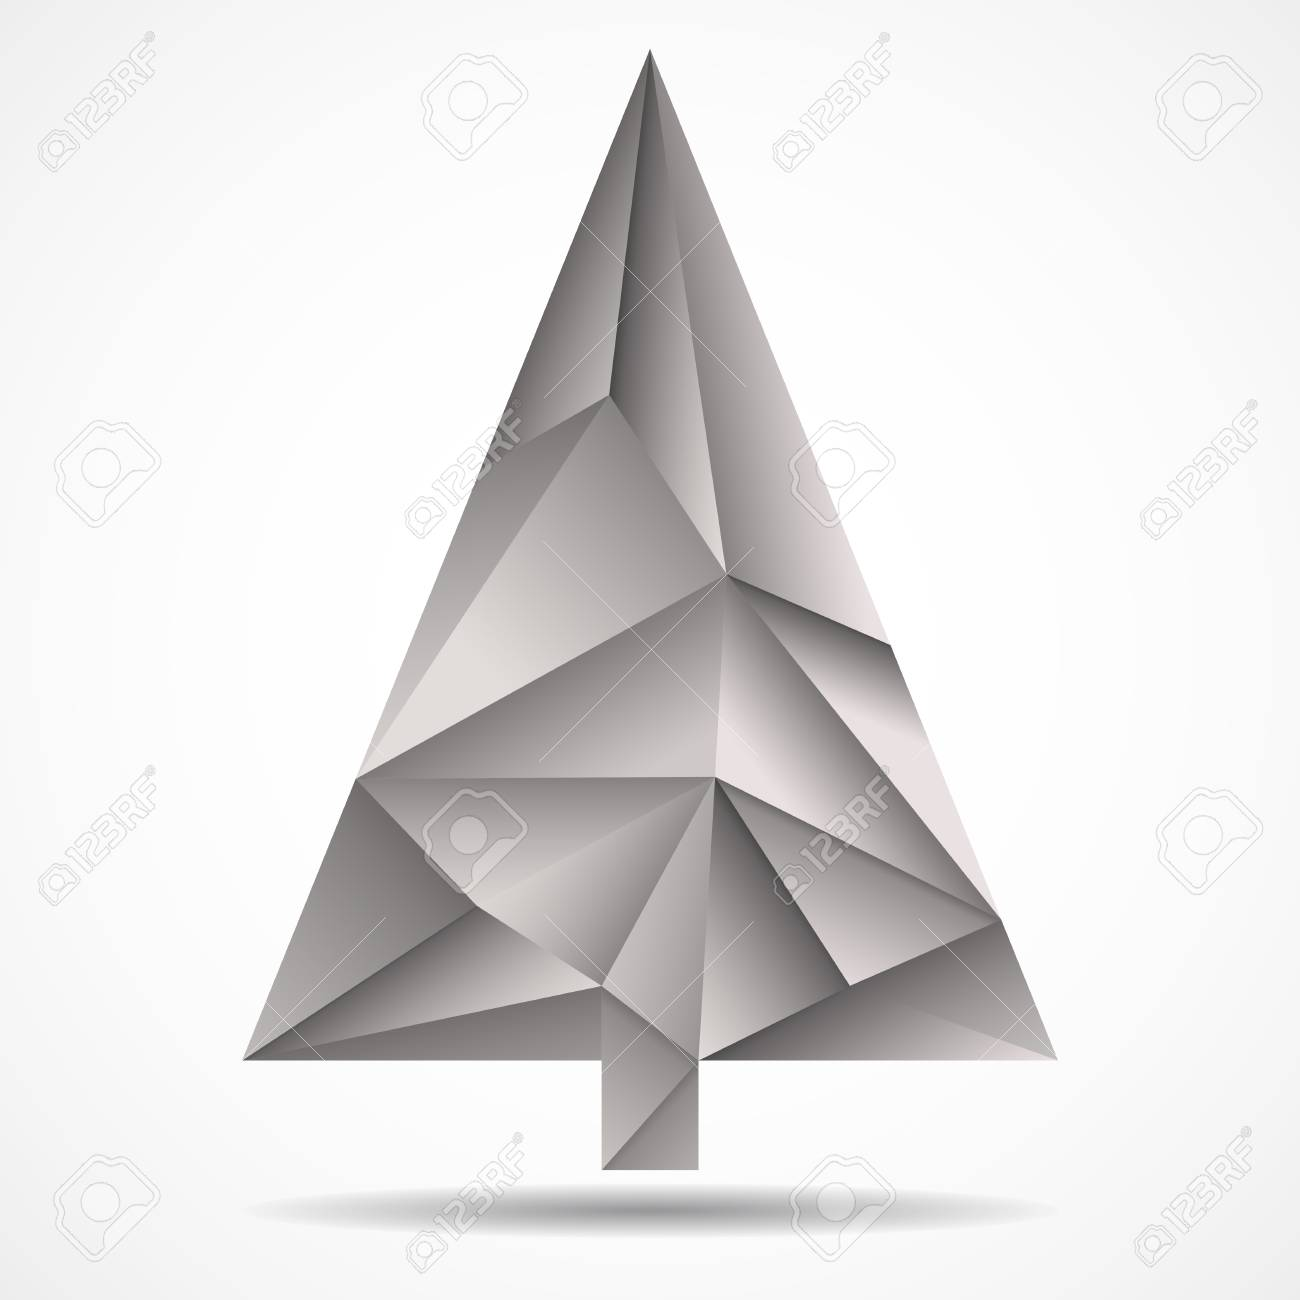 Abstract Colorful Christmas Tree From Triangles Geometric Style Vector Illustration Eps 10 Stock